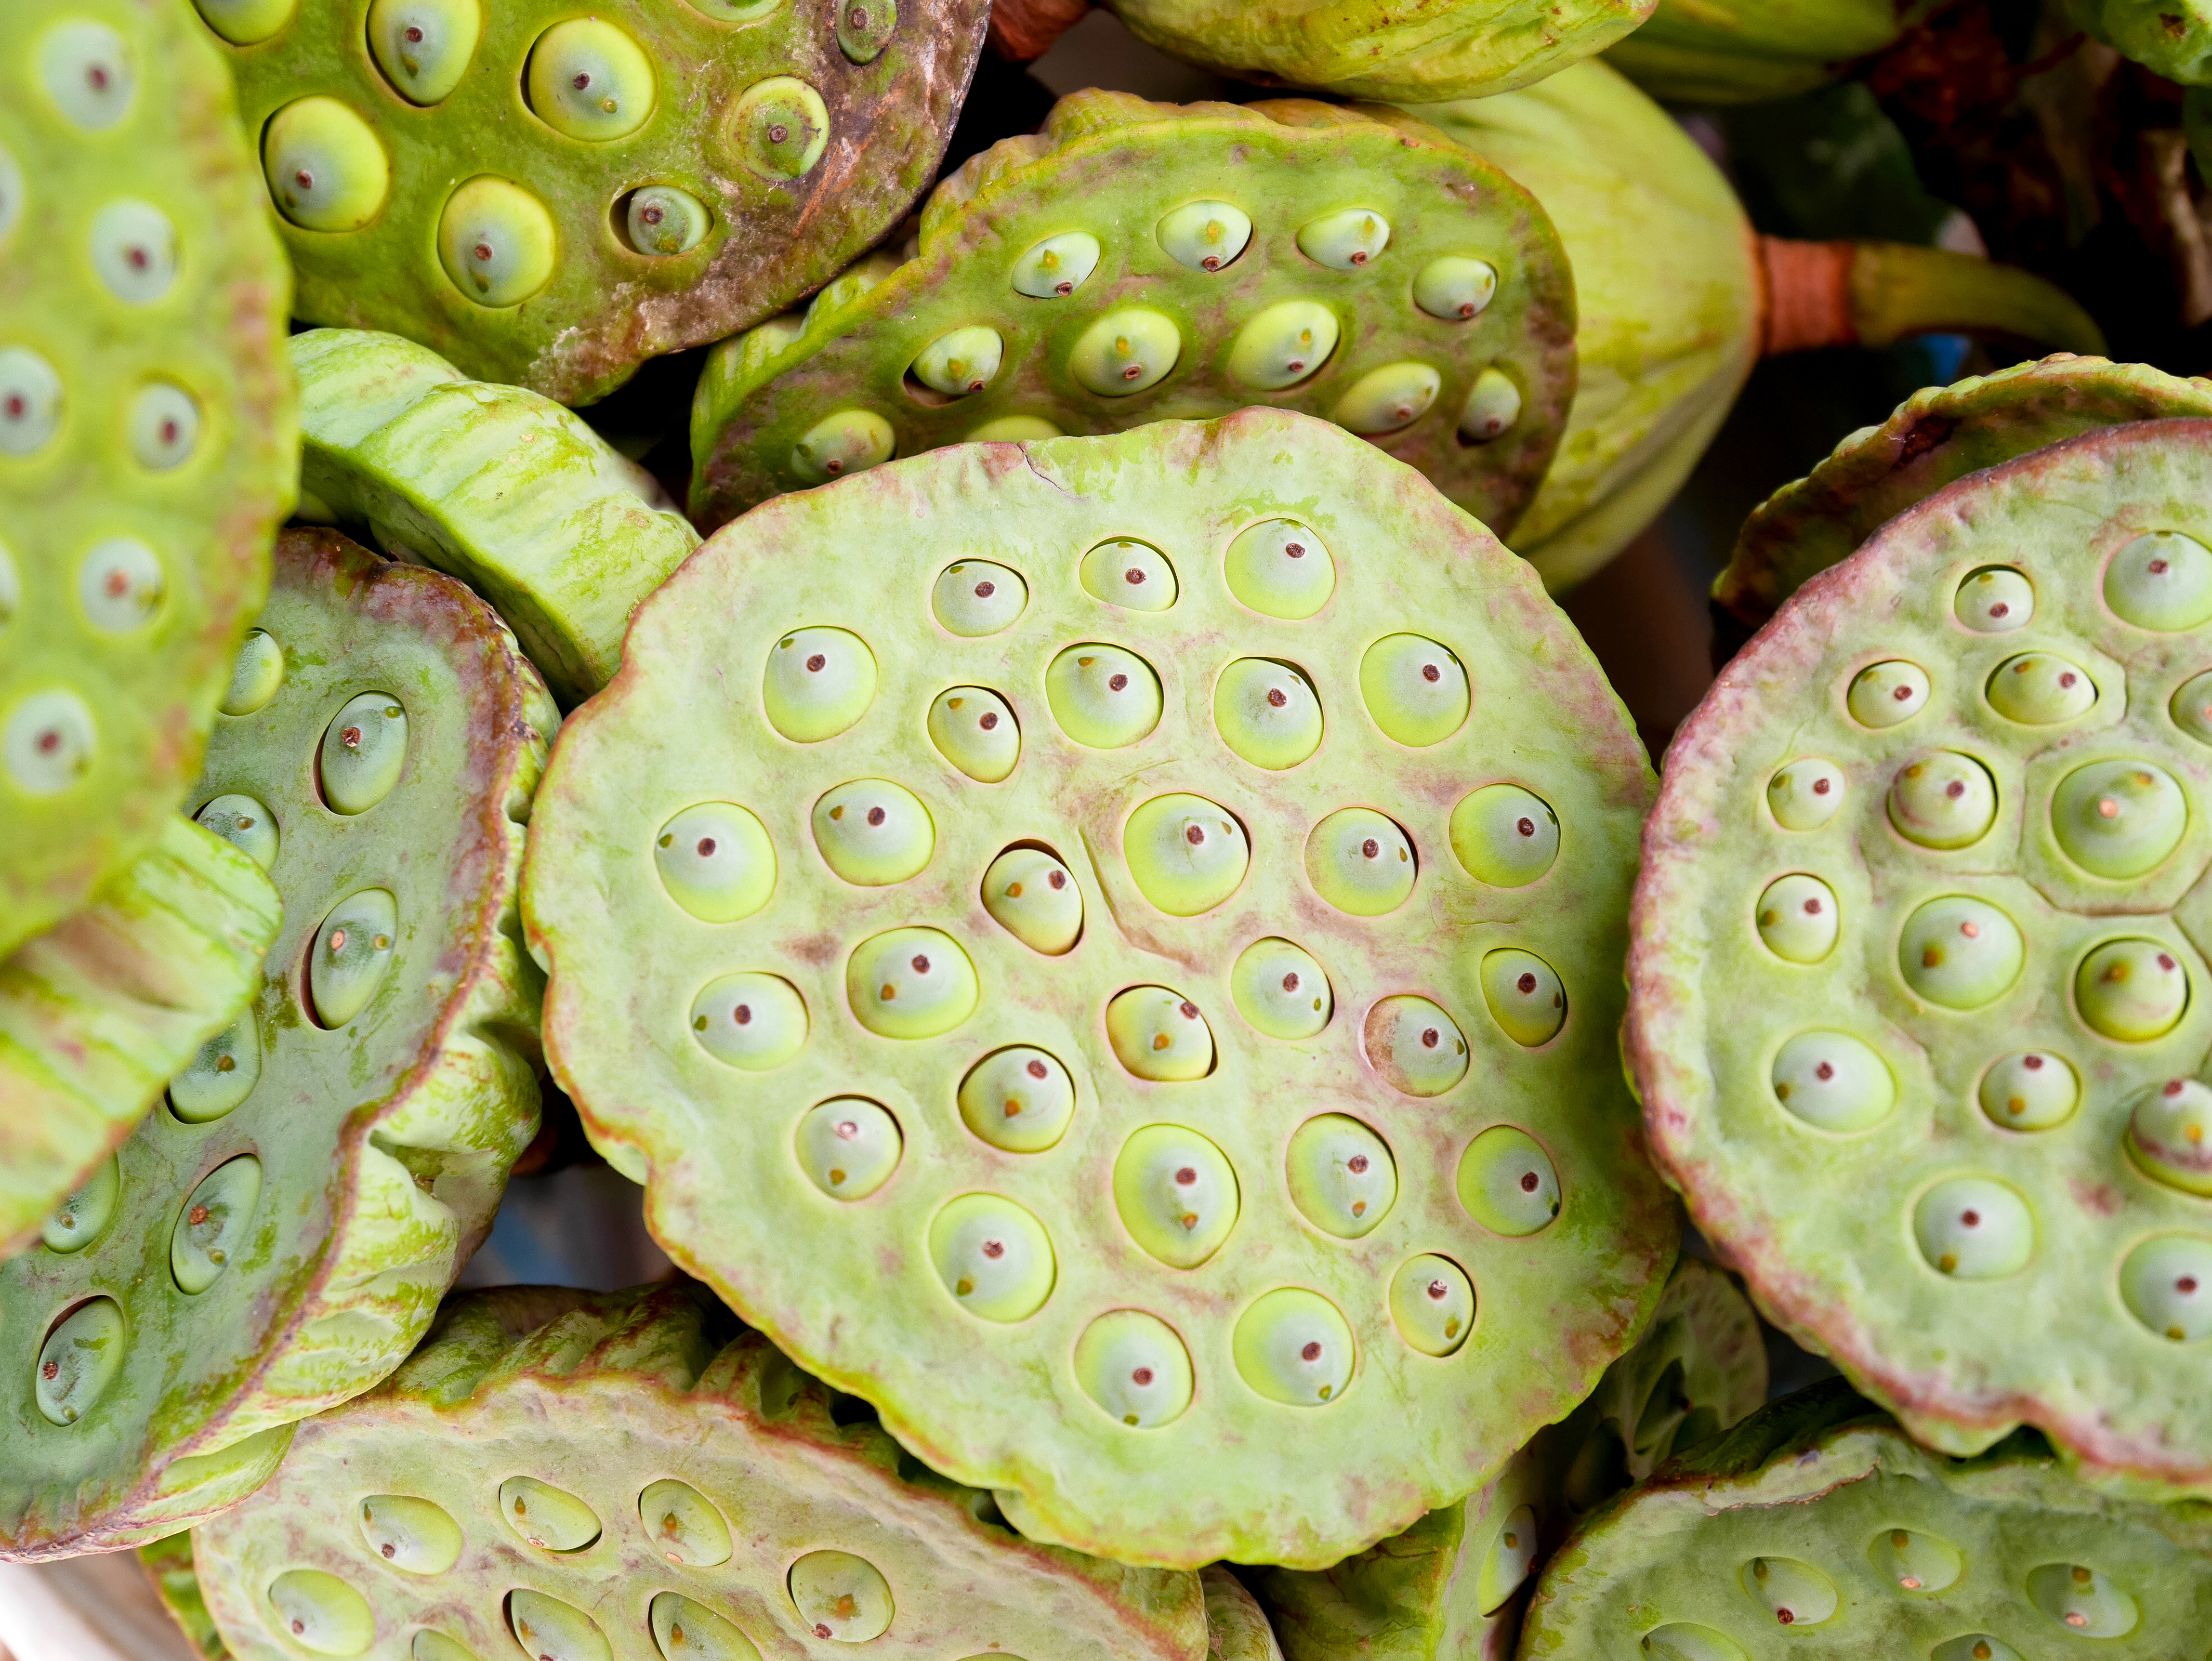 Trypophobia May Not Even Be A Phobia At All New Study Suggests